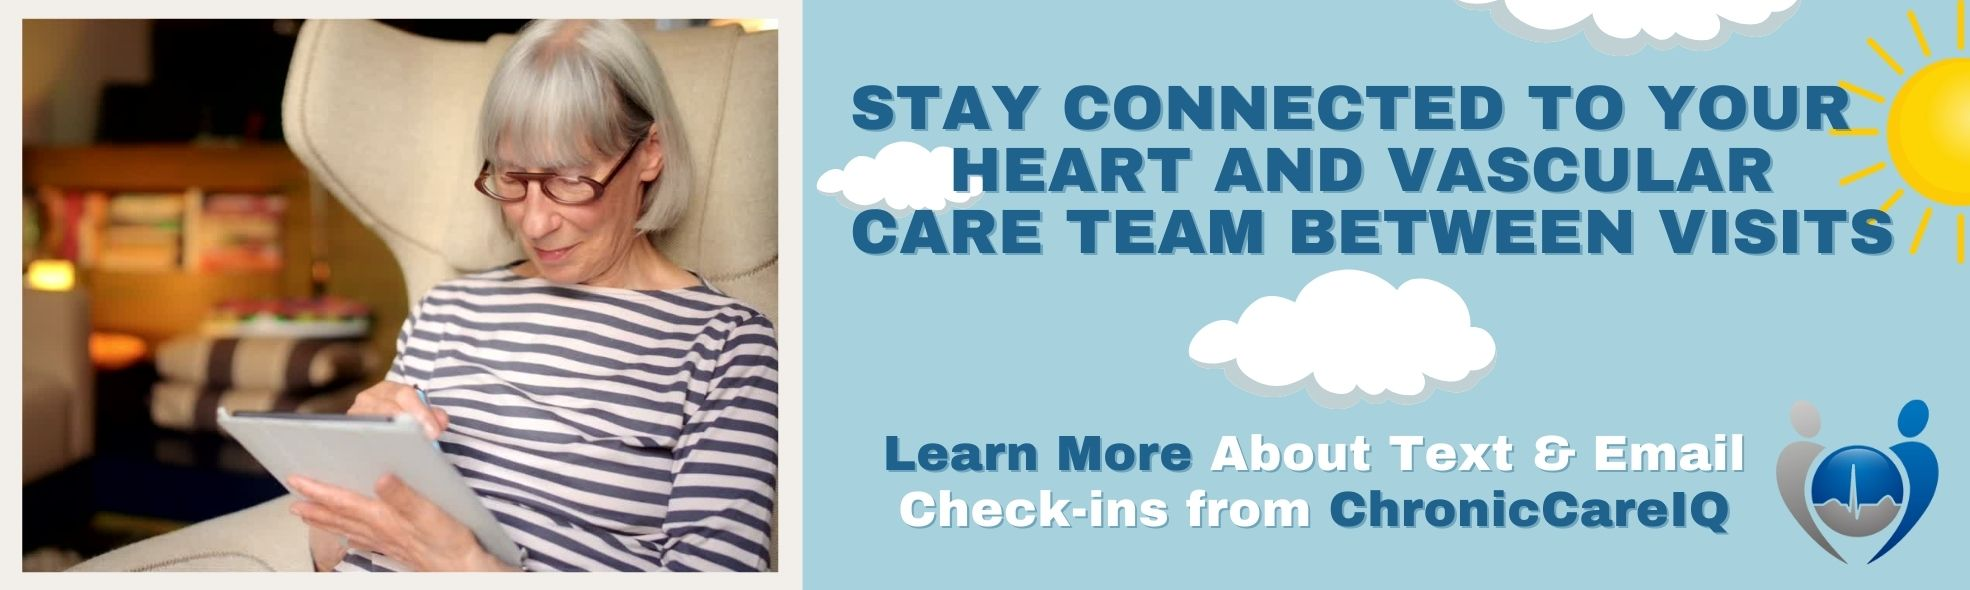 Banner: Woman using tablet - Click to learn more about our new Chronic Care Management service